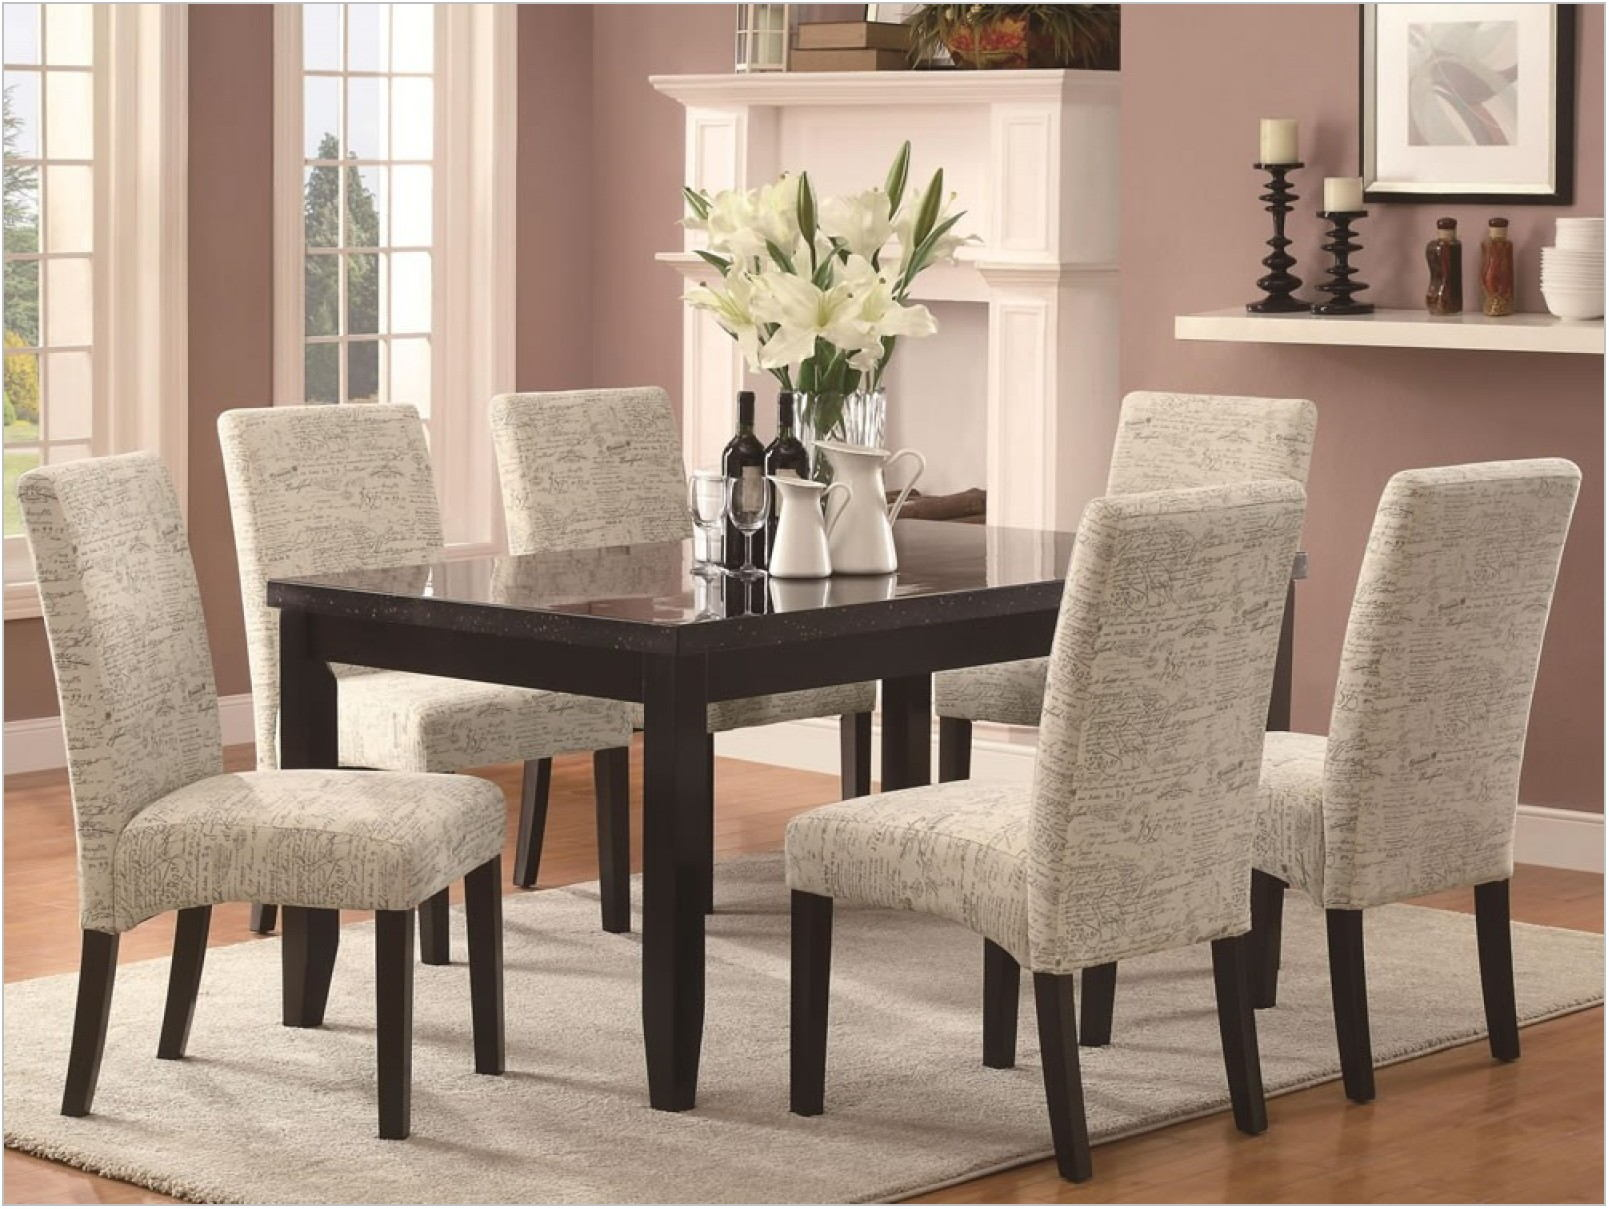 Cheap Upholstered Dining Room Chairs